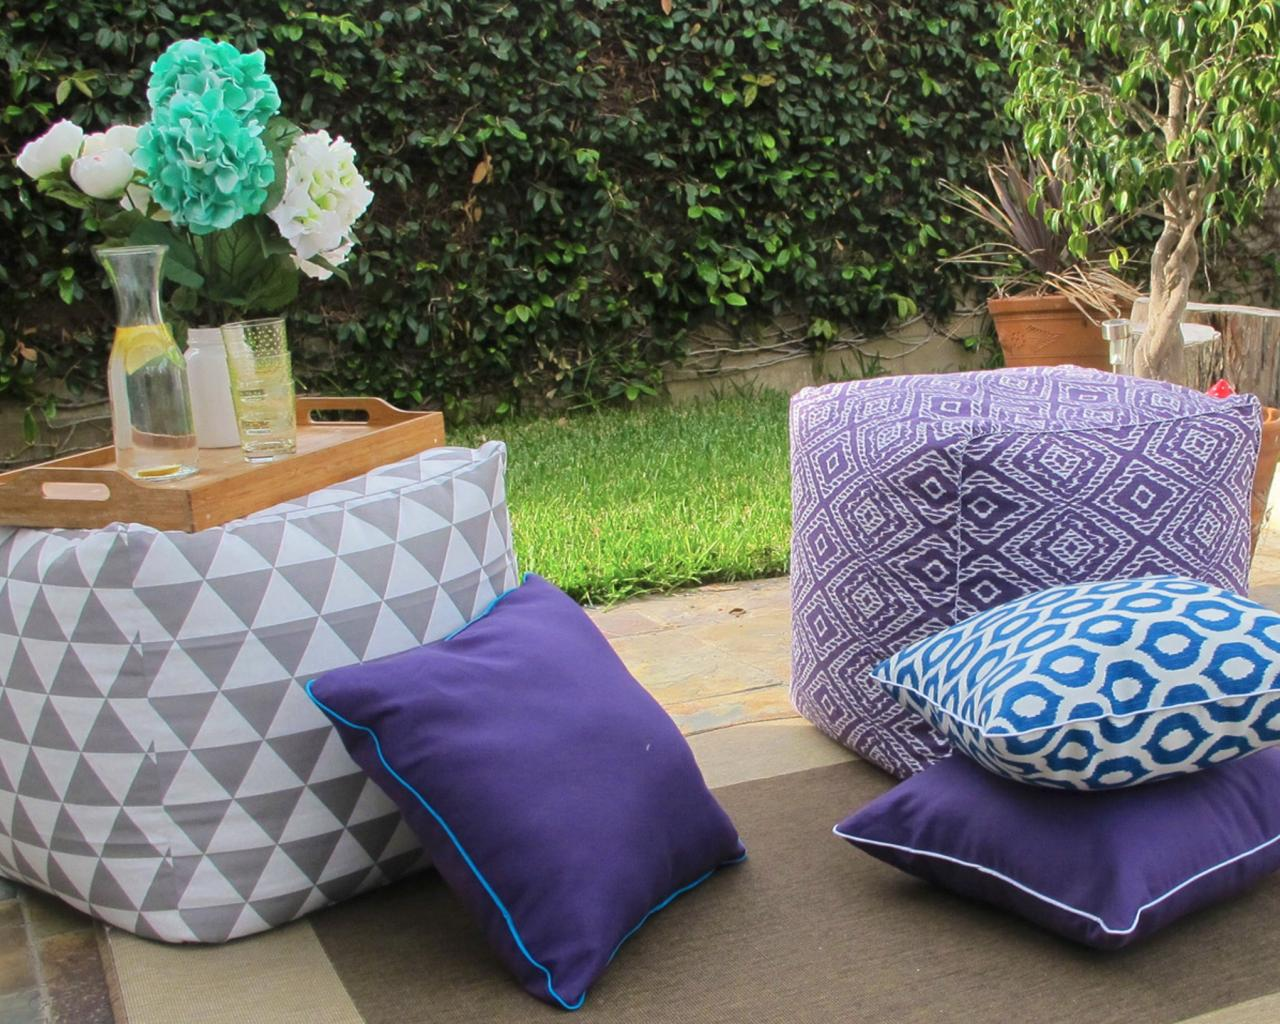 How to Make Outdoor Pillows and Cushions | Sponsored How-Tos ...